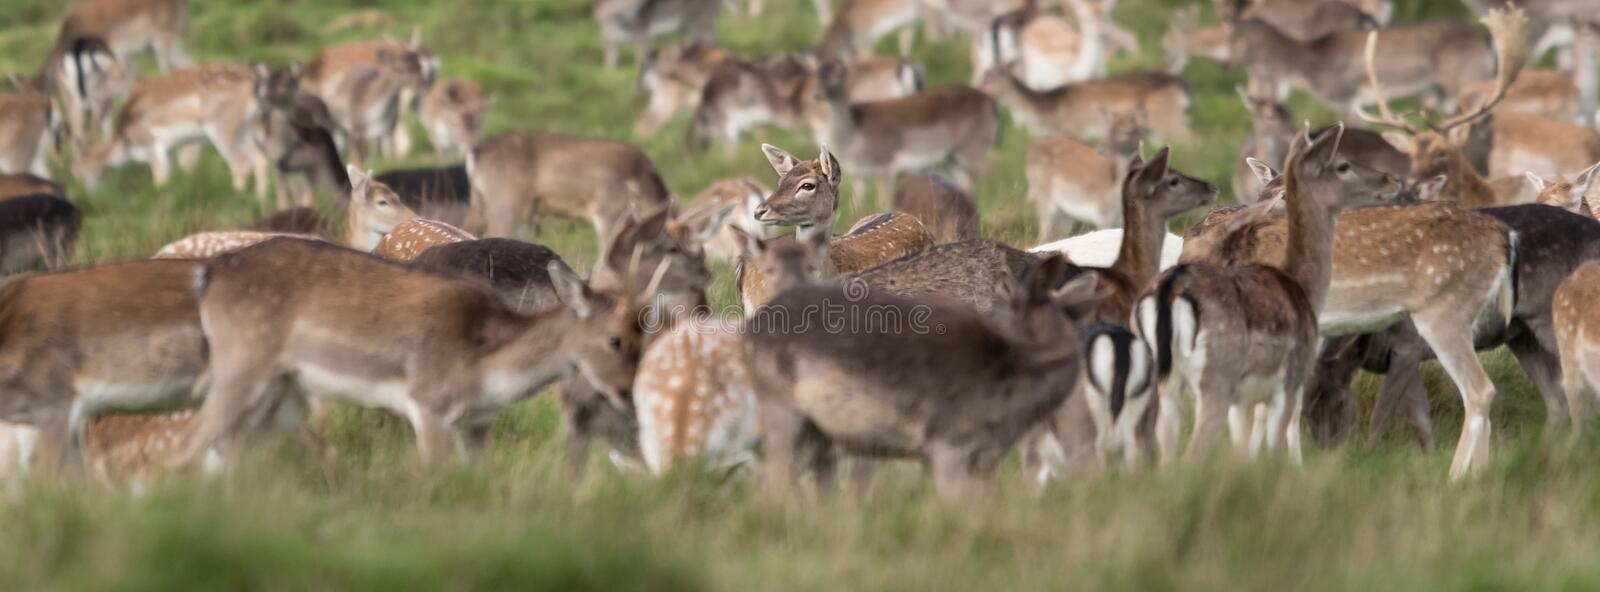 A stand out deer amongst the wild deer herd roaming in the grass royalty free stock image